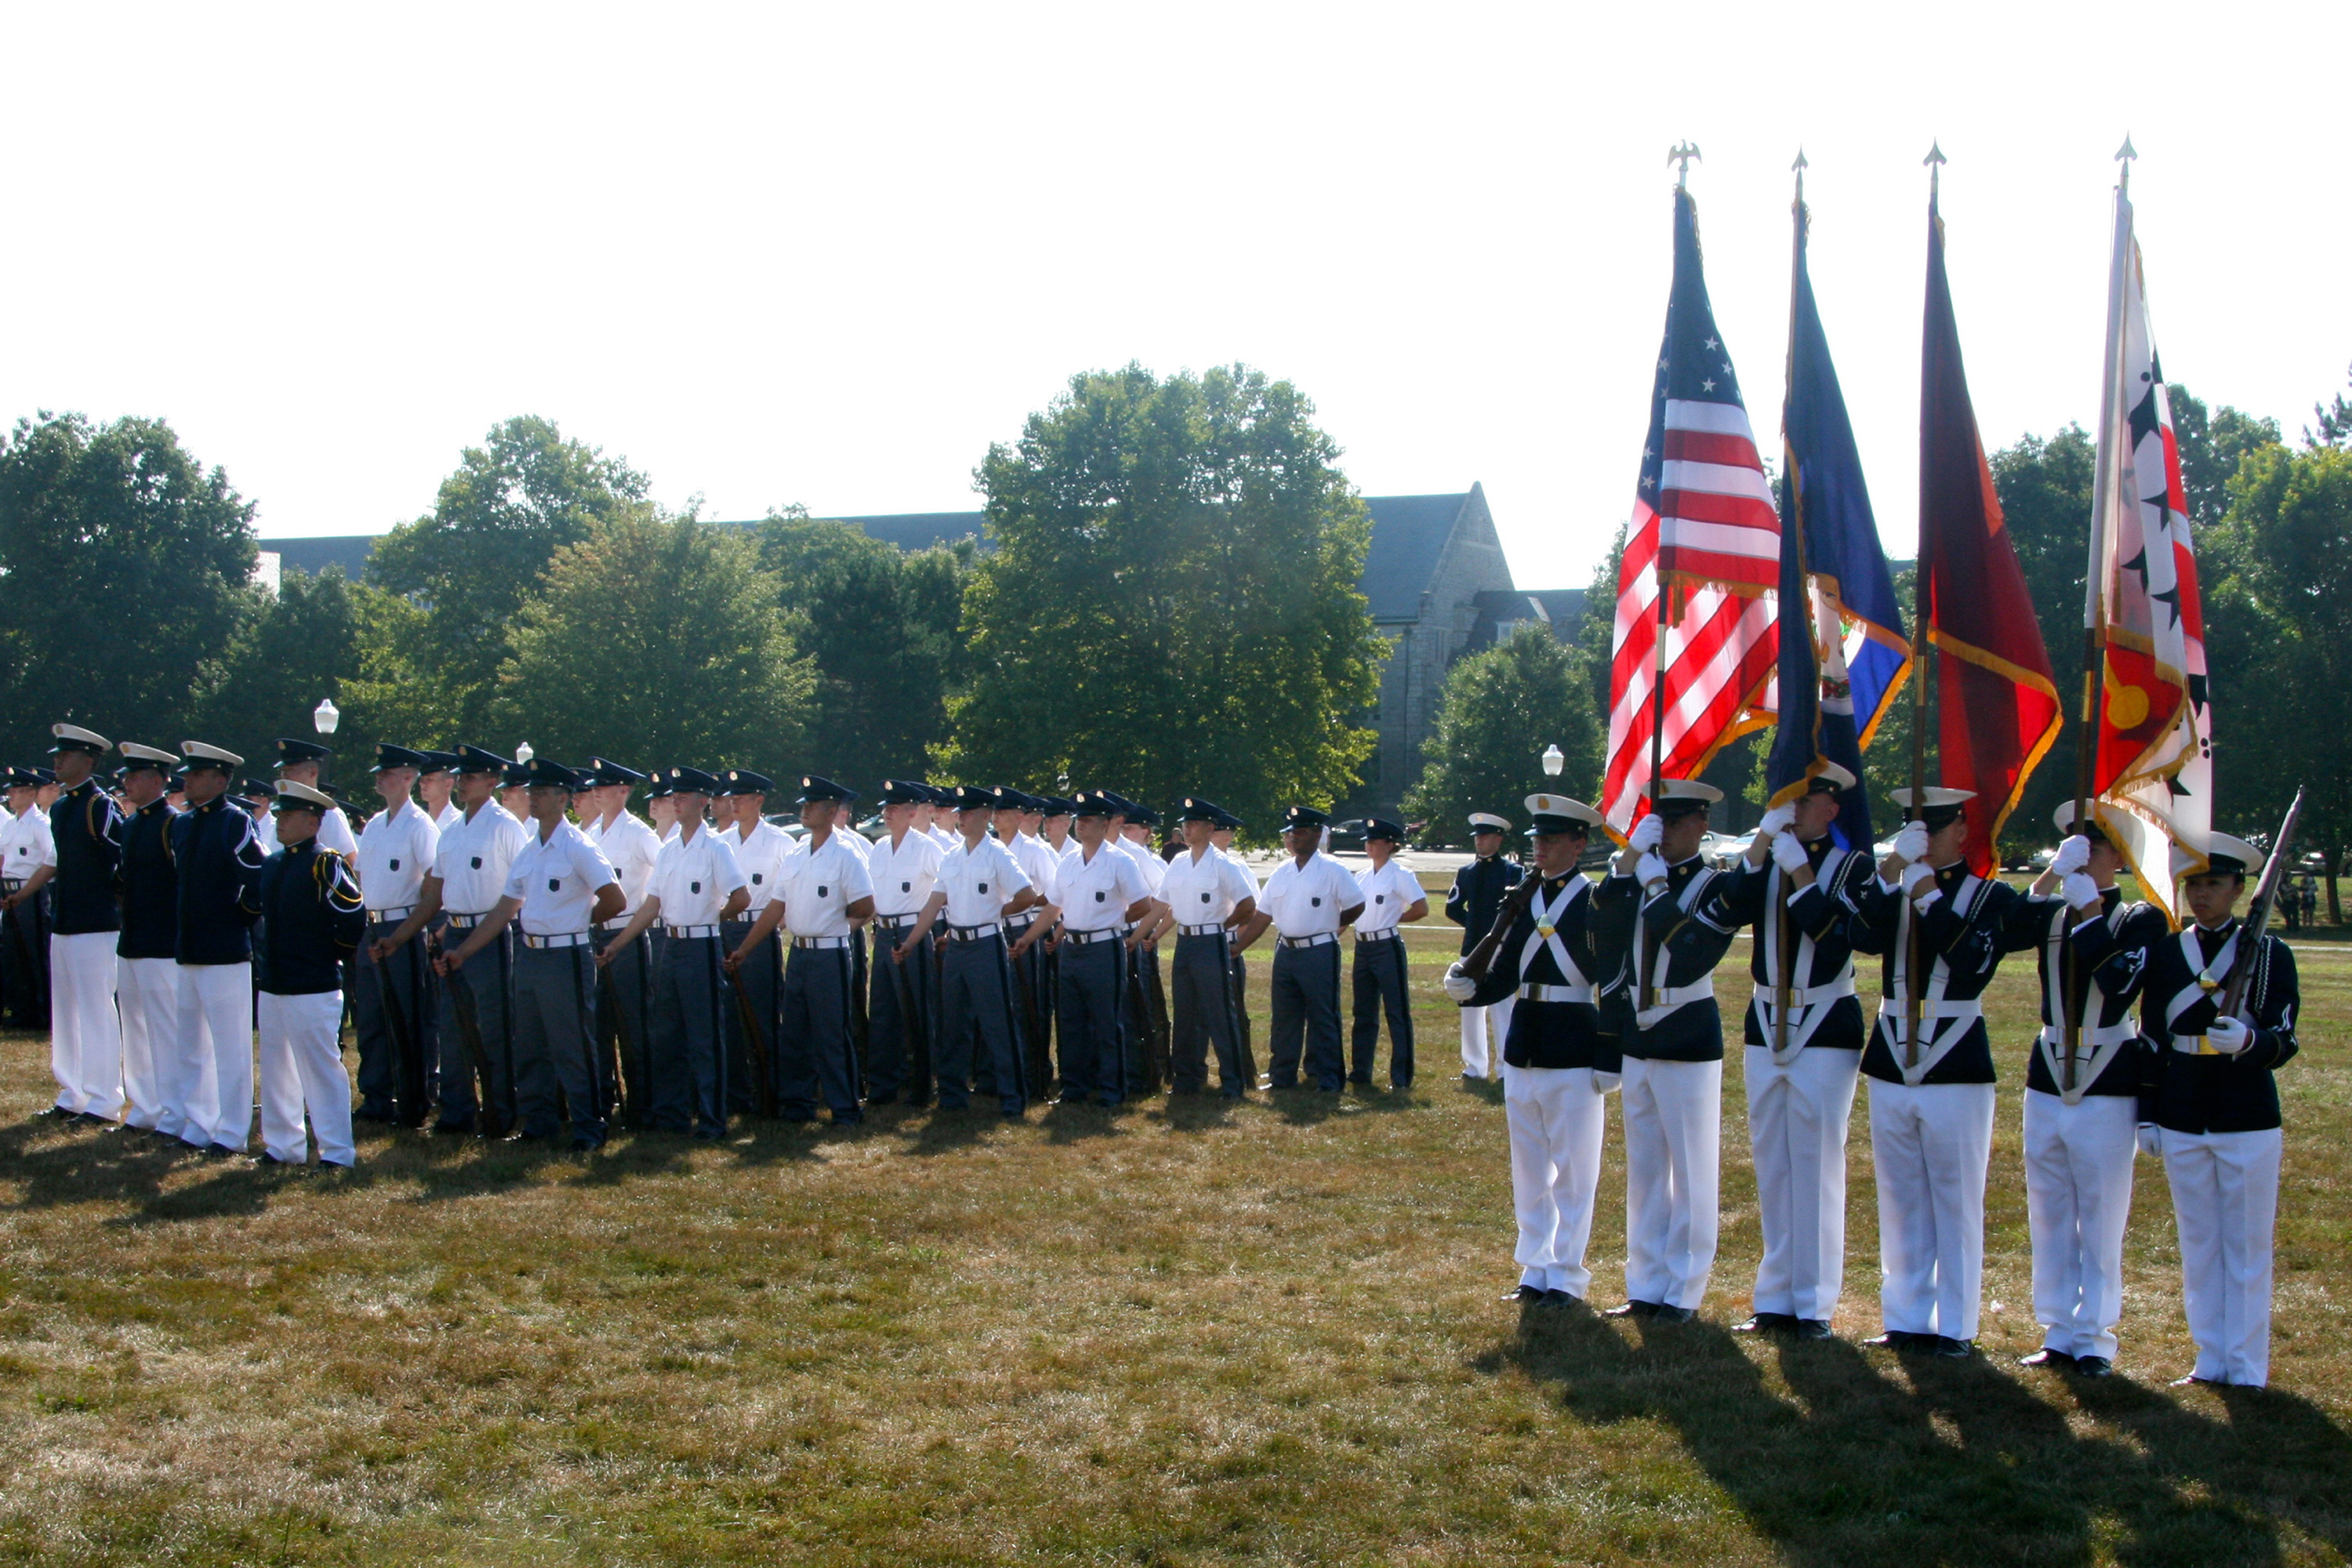 The Virginia Tech Corps of Cadets New Cadet Parade each August welcomes the new Corps of Cadets members, shown on the Drillfield, as they officially join the Regiment